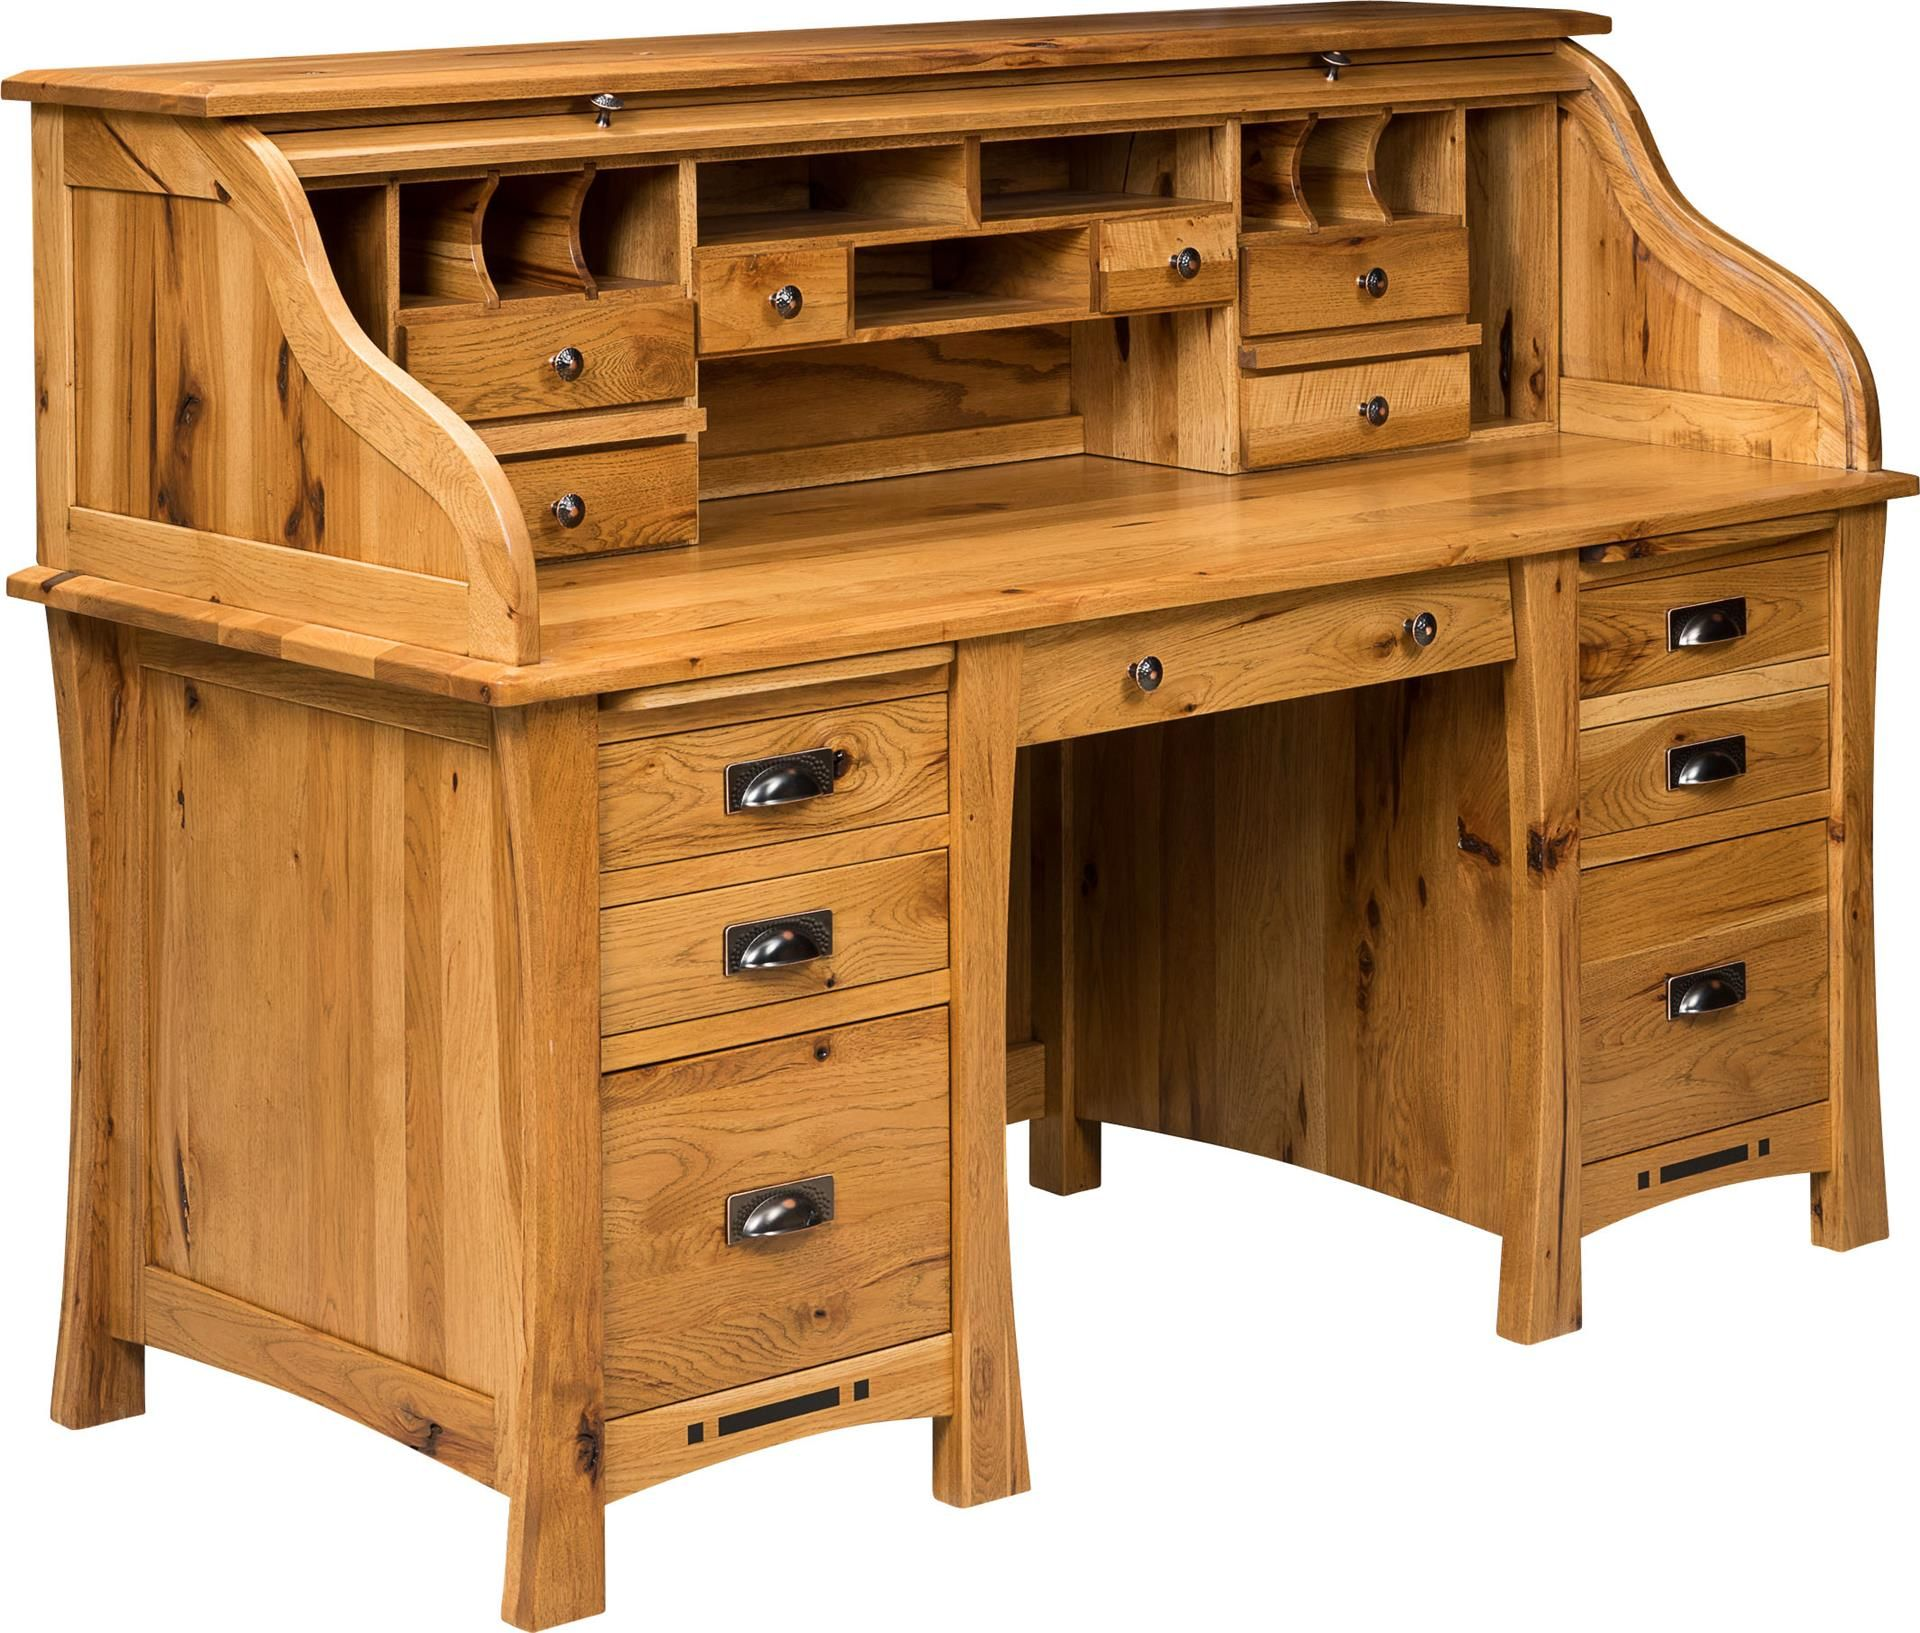 Amish Arts And Crafts Rolltop Desk Woodworking Desk Plans Woodworking Desk Amish Furniture